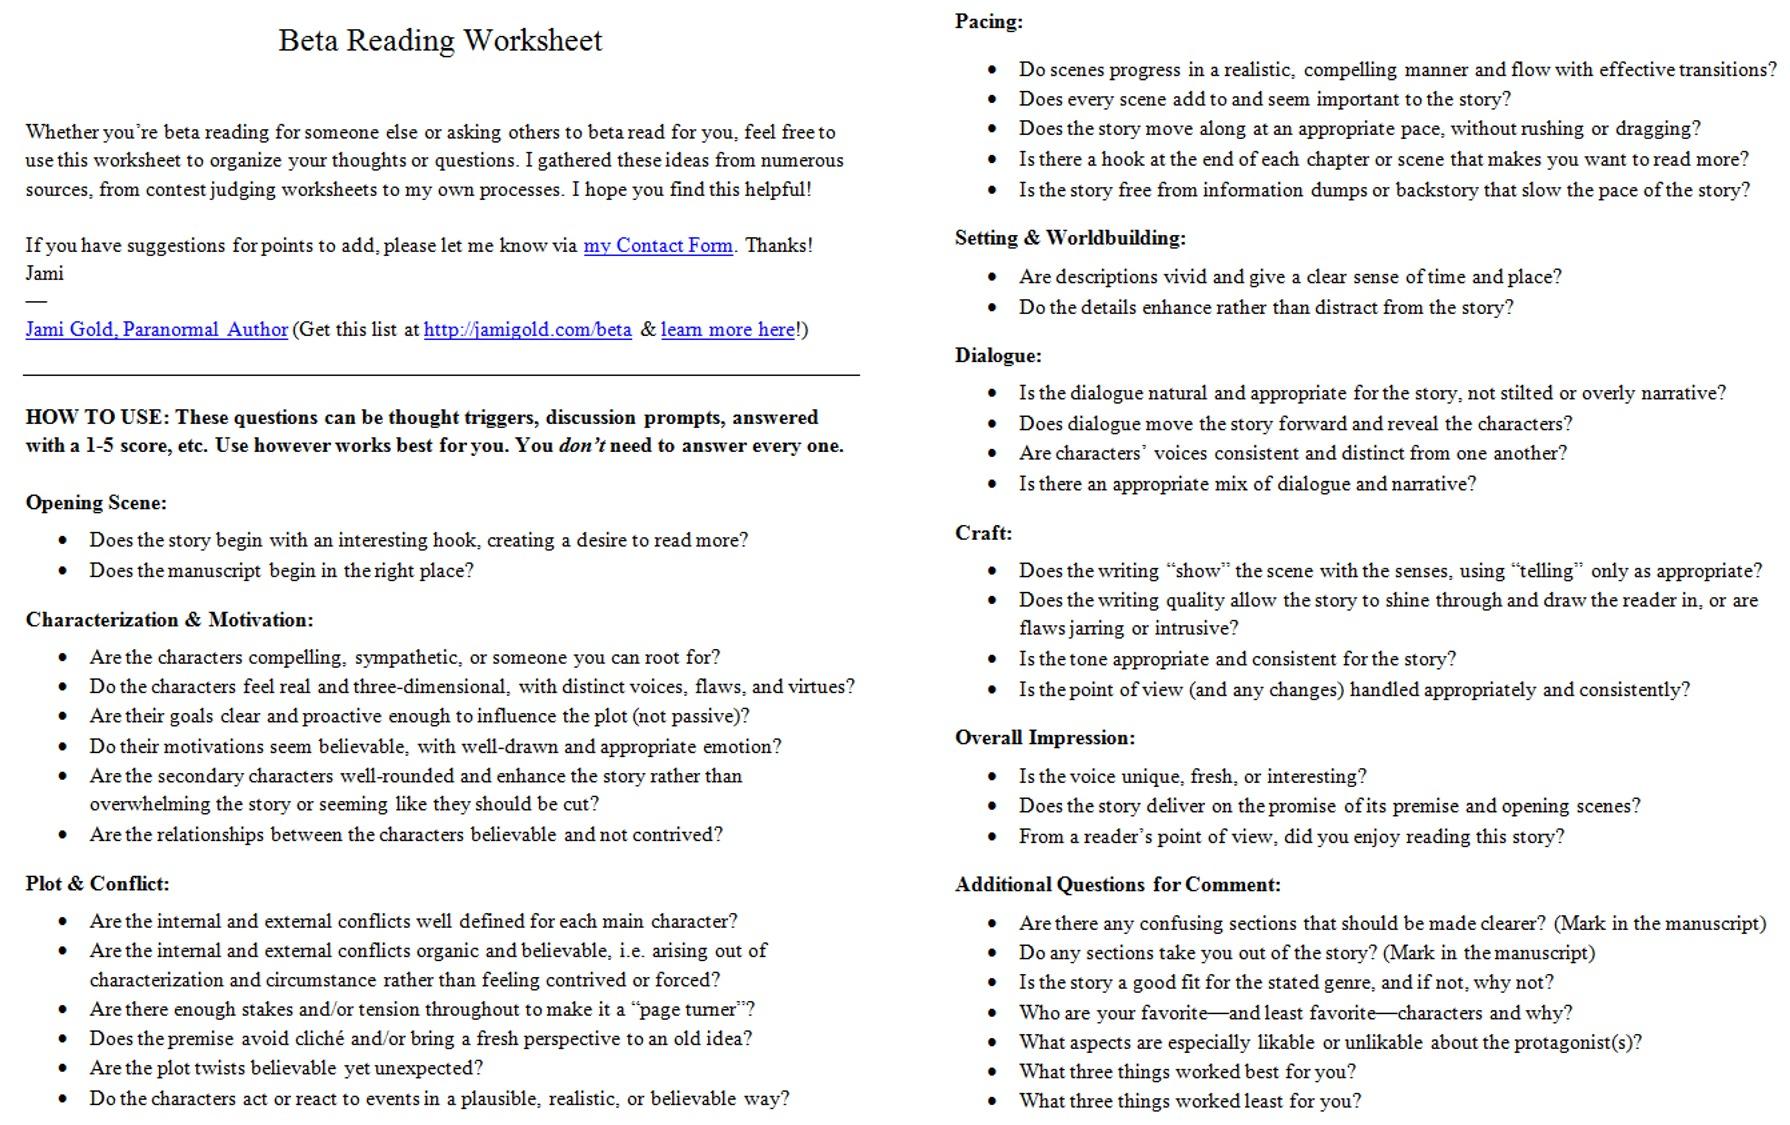 Weirdmailus  Terrific Worksheets For Writers  Jami Gold Paranormal Author With Heavenly Screen Shot Of The Twopage Beta Reading Worksheet With Amazing Good Samaritan Worksheet Also Long Division Worksheets For Grade  In Addition Numbers  Worksheets Kindergarten And Create Printing Worksheets As Well As Worksheet On Logarithms Additionally Plural Singular Nouns Worksheet From Jamigoldcom With Weirdmailus  Heavenly Worksheets For Writers  Jami Gold Paranormal Author With Amazing Screen Shot Of The Twopage Beta Reading Worksheet And Terrific Good Samaritan Worksheet Also Long Division Worksheets For Grade  In Addition Numbers  Worksheets Kindergarten From Jamigoldcom